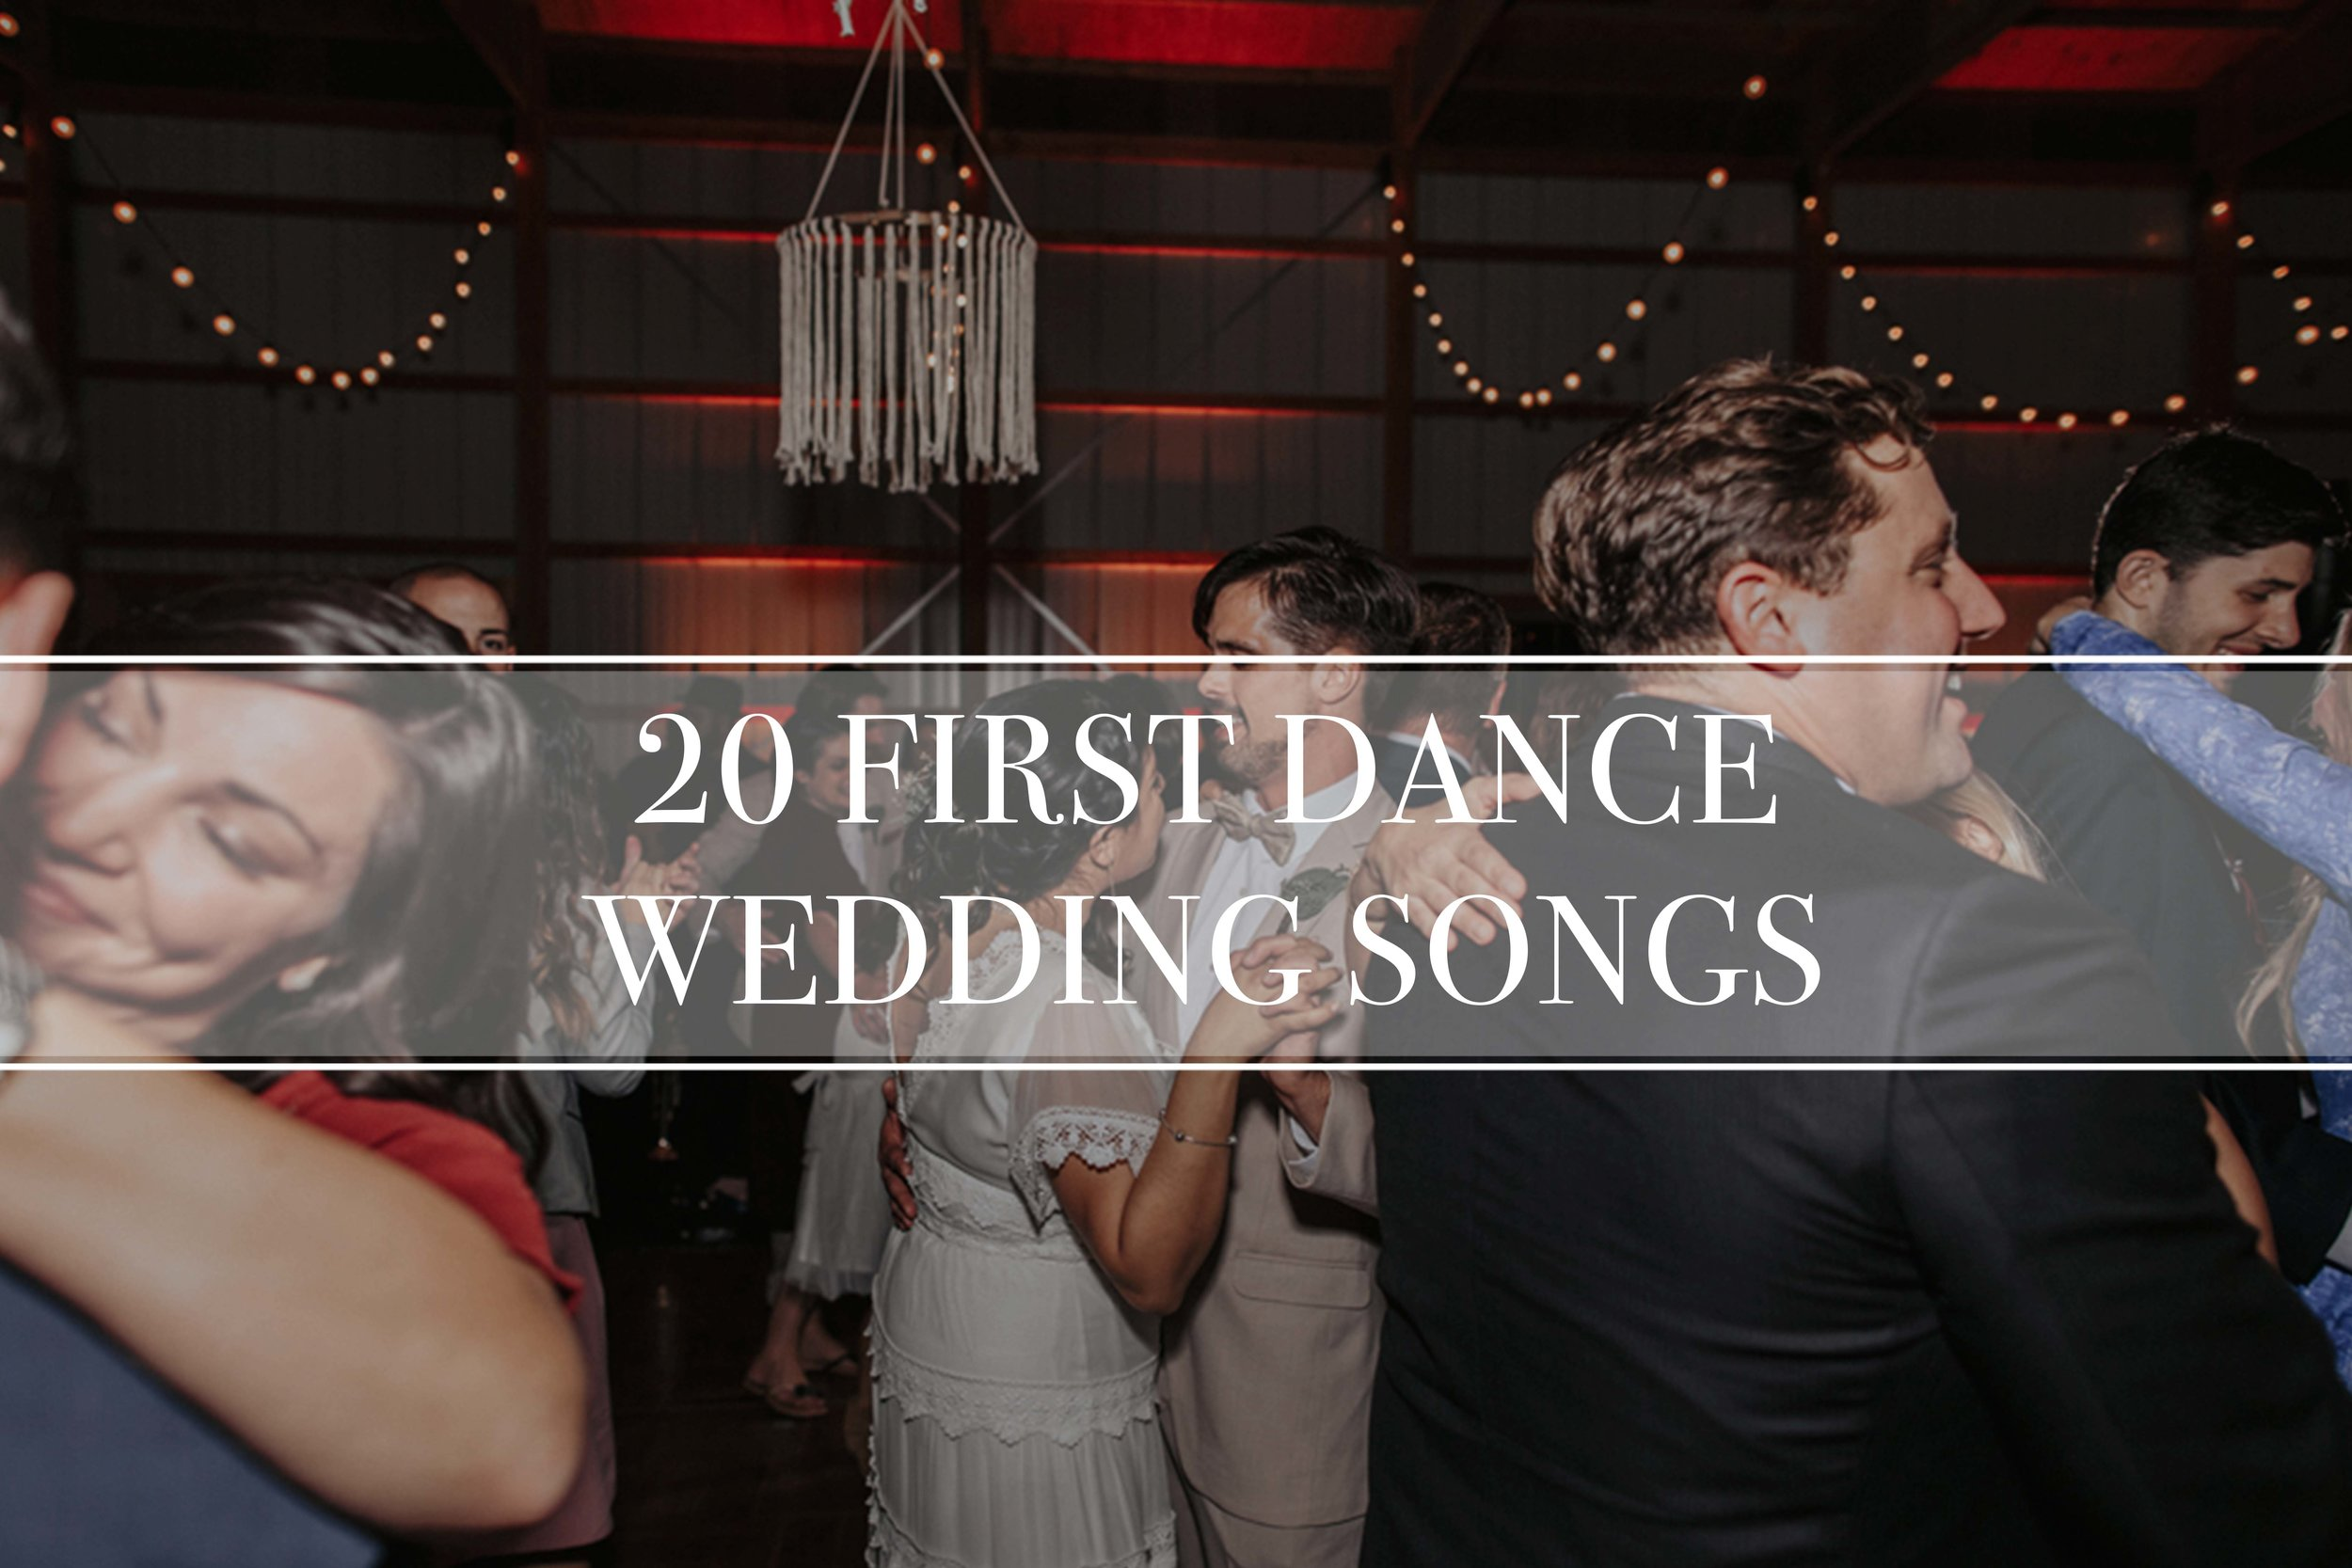 20 First Dance Wedding Songs to Check Out! — Wedding